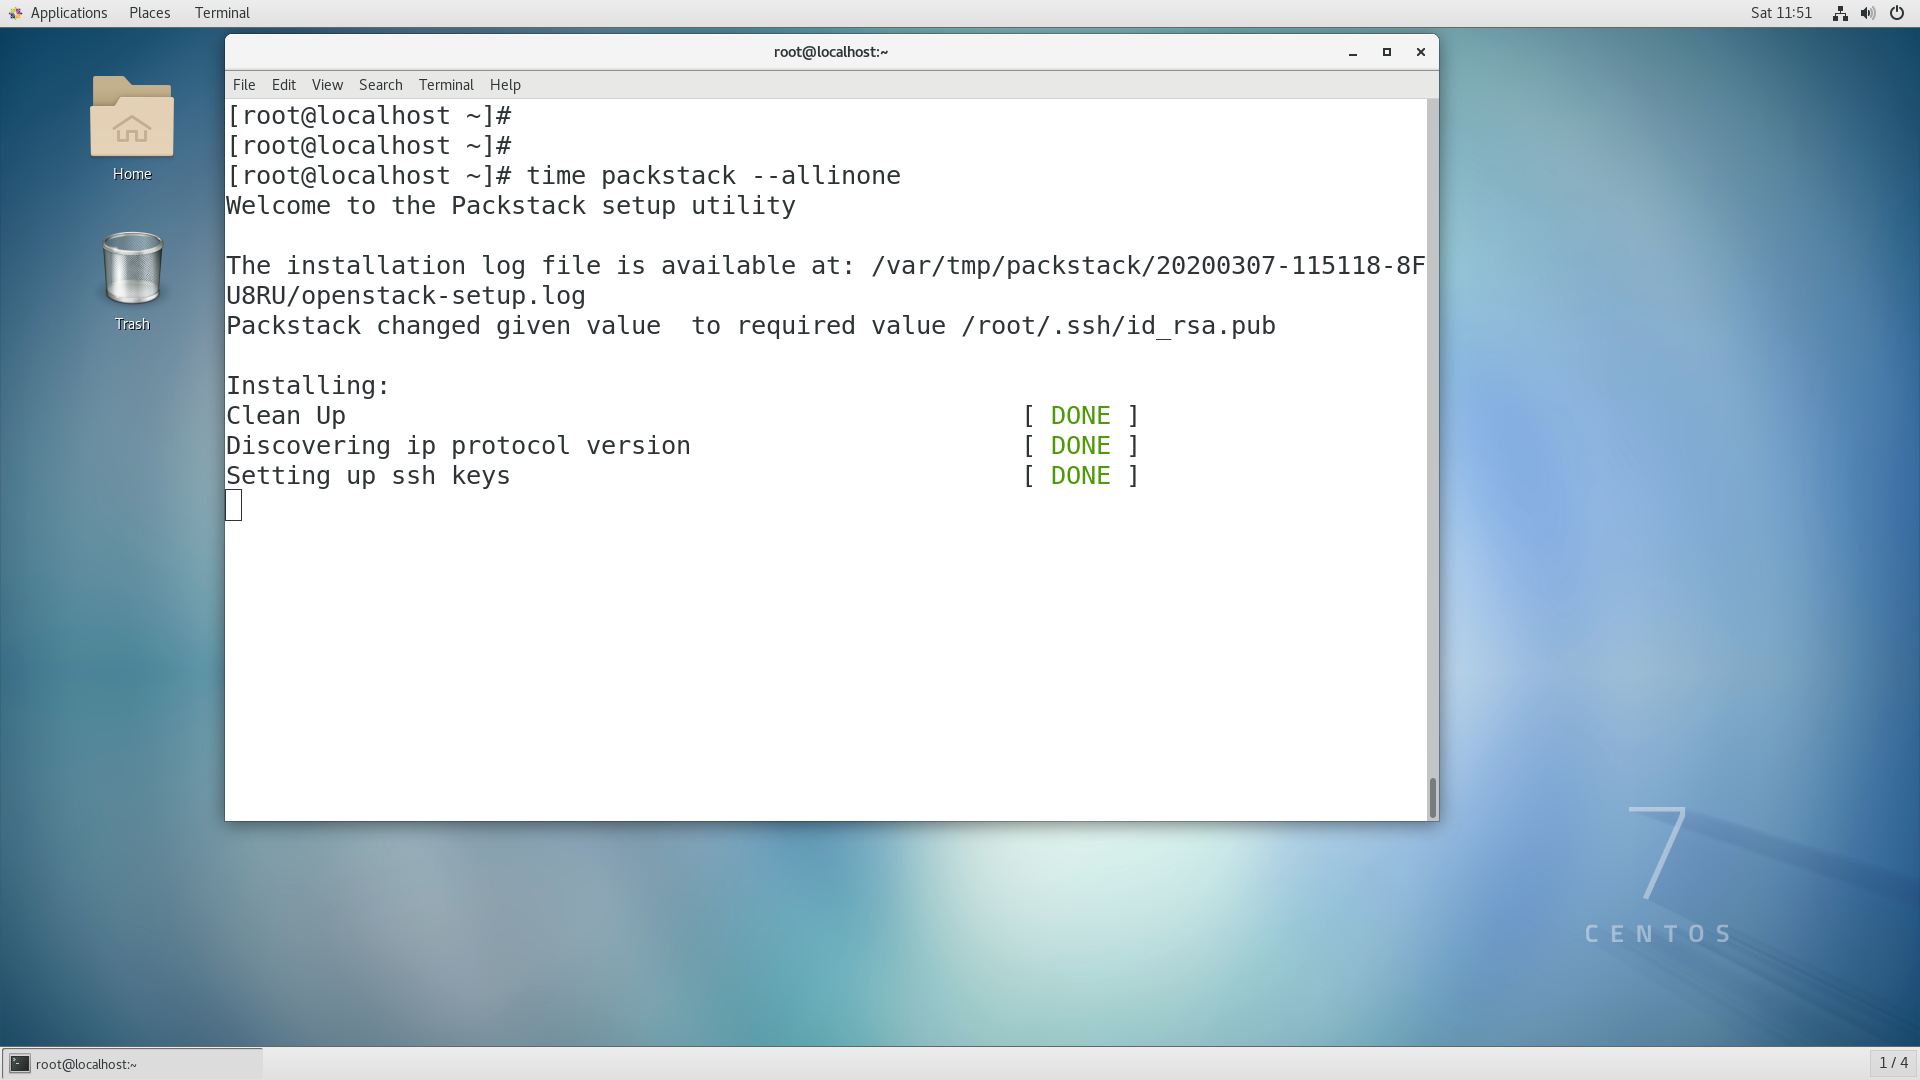 installing Openstack - Execution Takes more Than 30 mints )